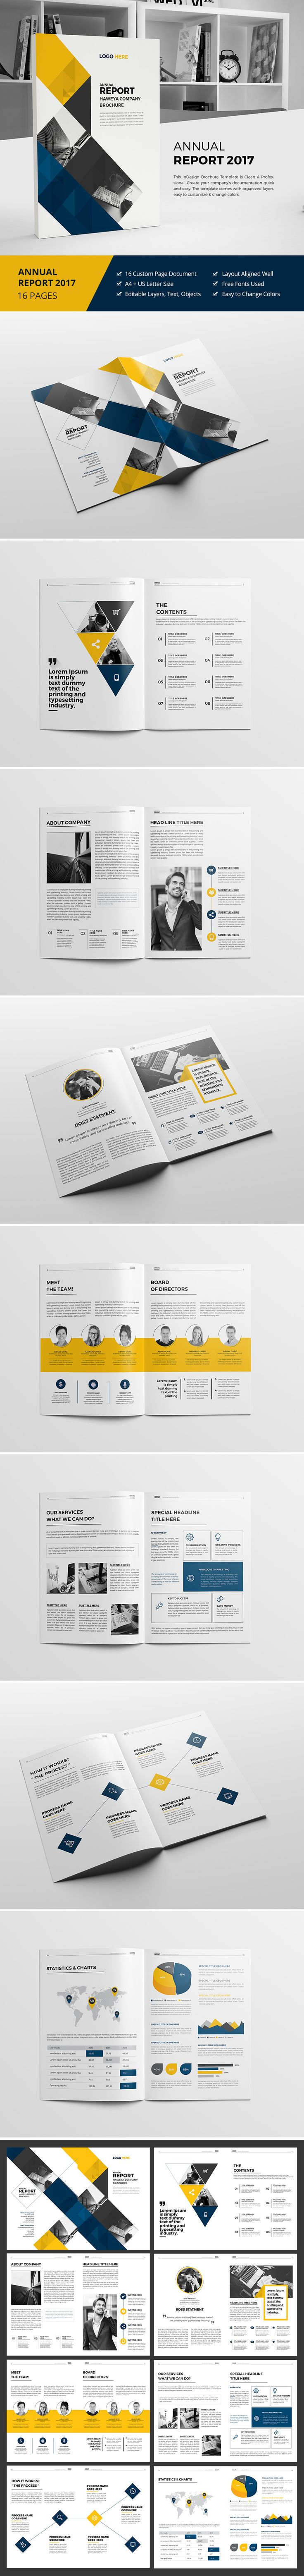 """Check out this @Behance project: """"Haweya Annual Report 02"""" https://www.behance.net/gallery/52147291/Haweya-Annual-Report-02"""